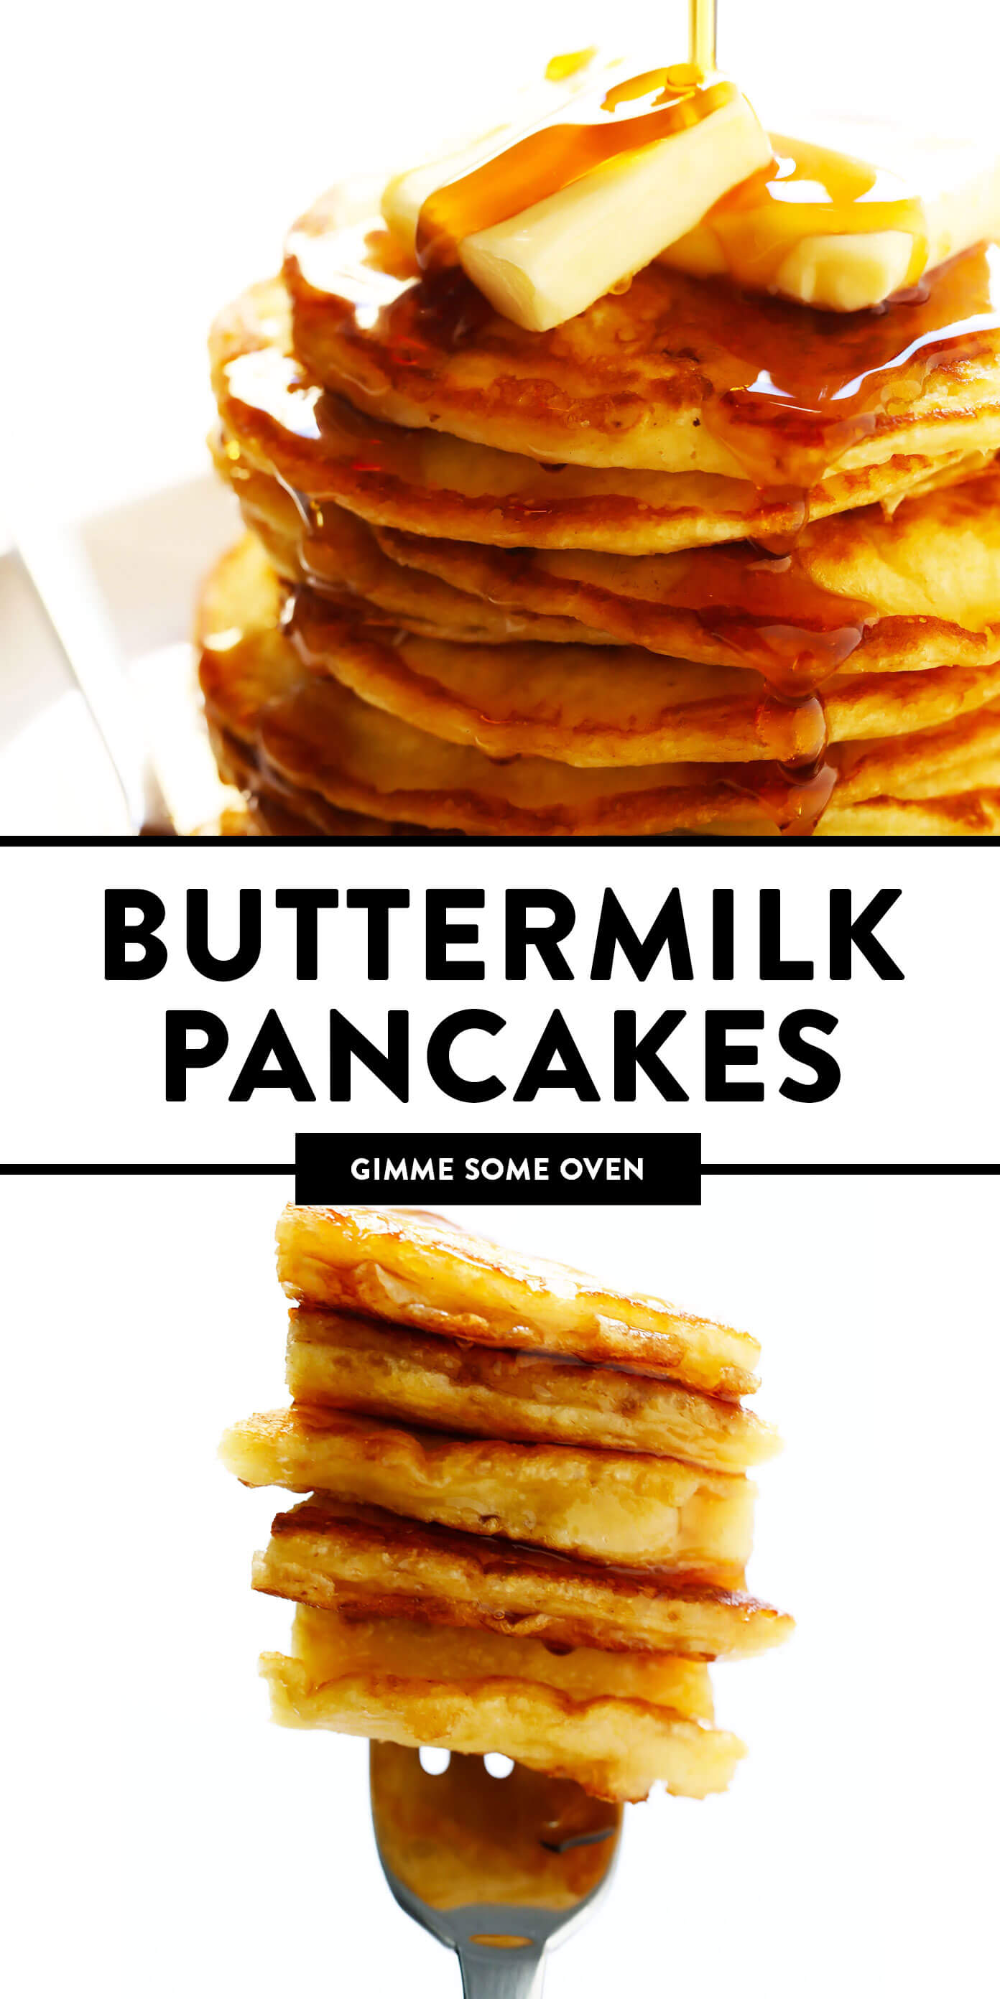 Buttermilk Pancakes Gimme Some Oven Recipe In 2020 Pancake Recipe Easy The Best Buttermilk Pancake Recipe Buttermilk Pancakes